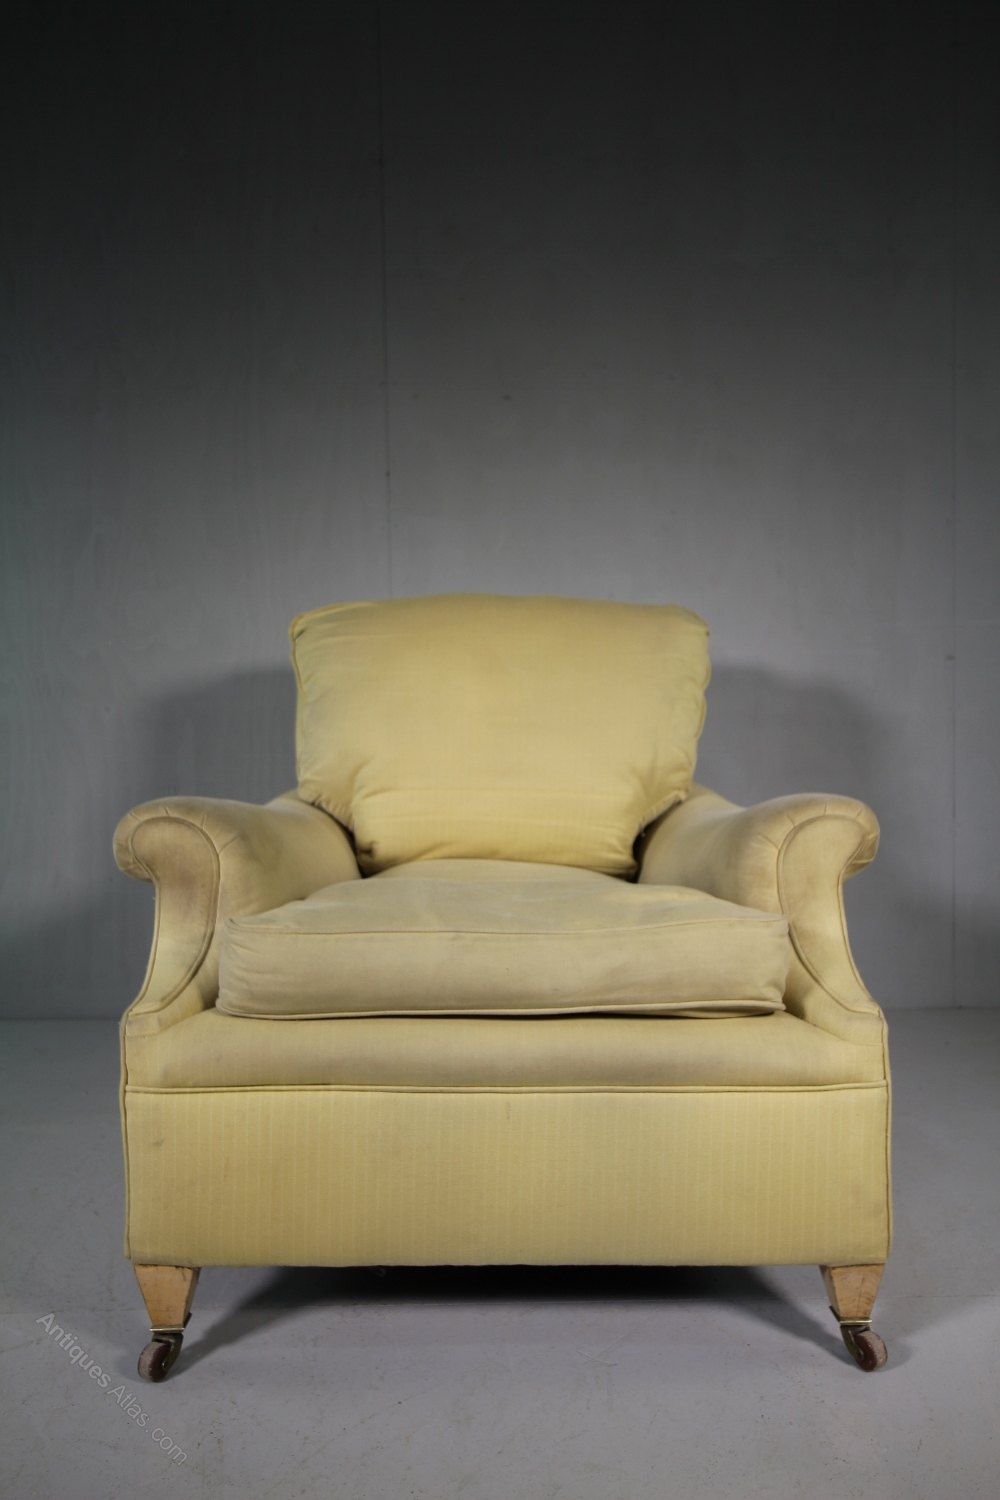 Quality 19th century antique upholstered armchair for Best quality upholstered furniture